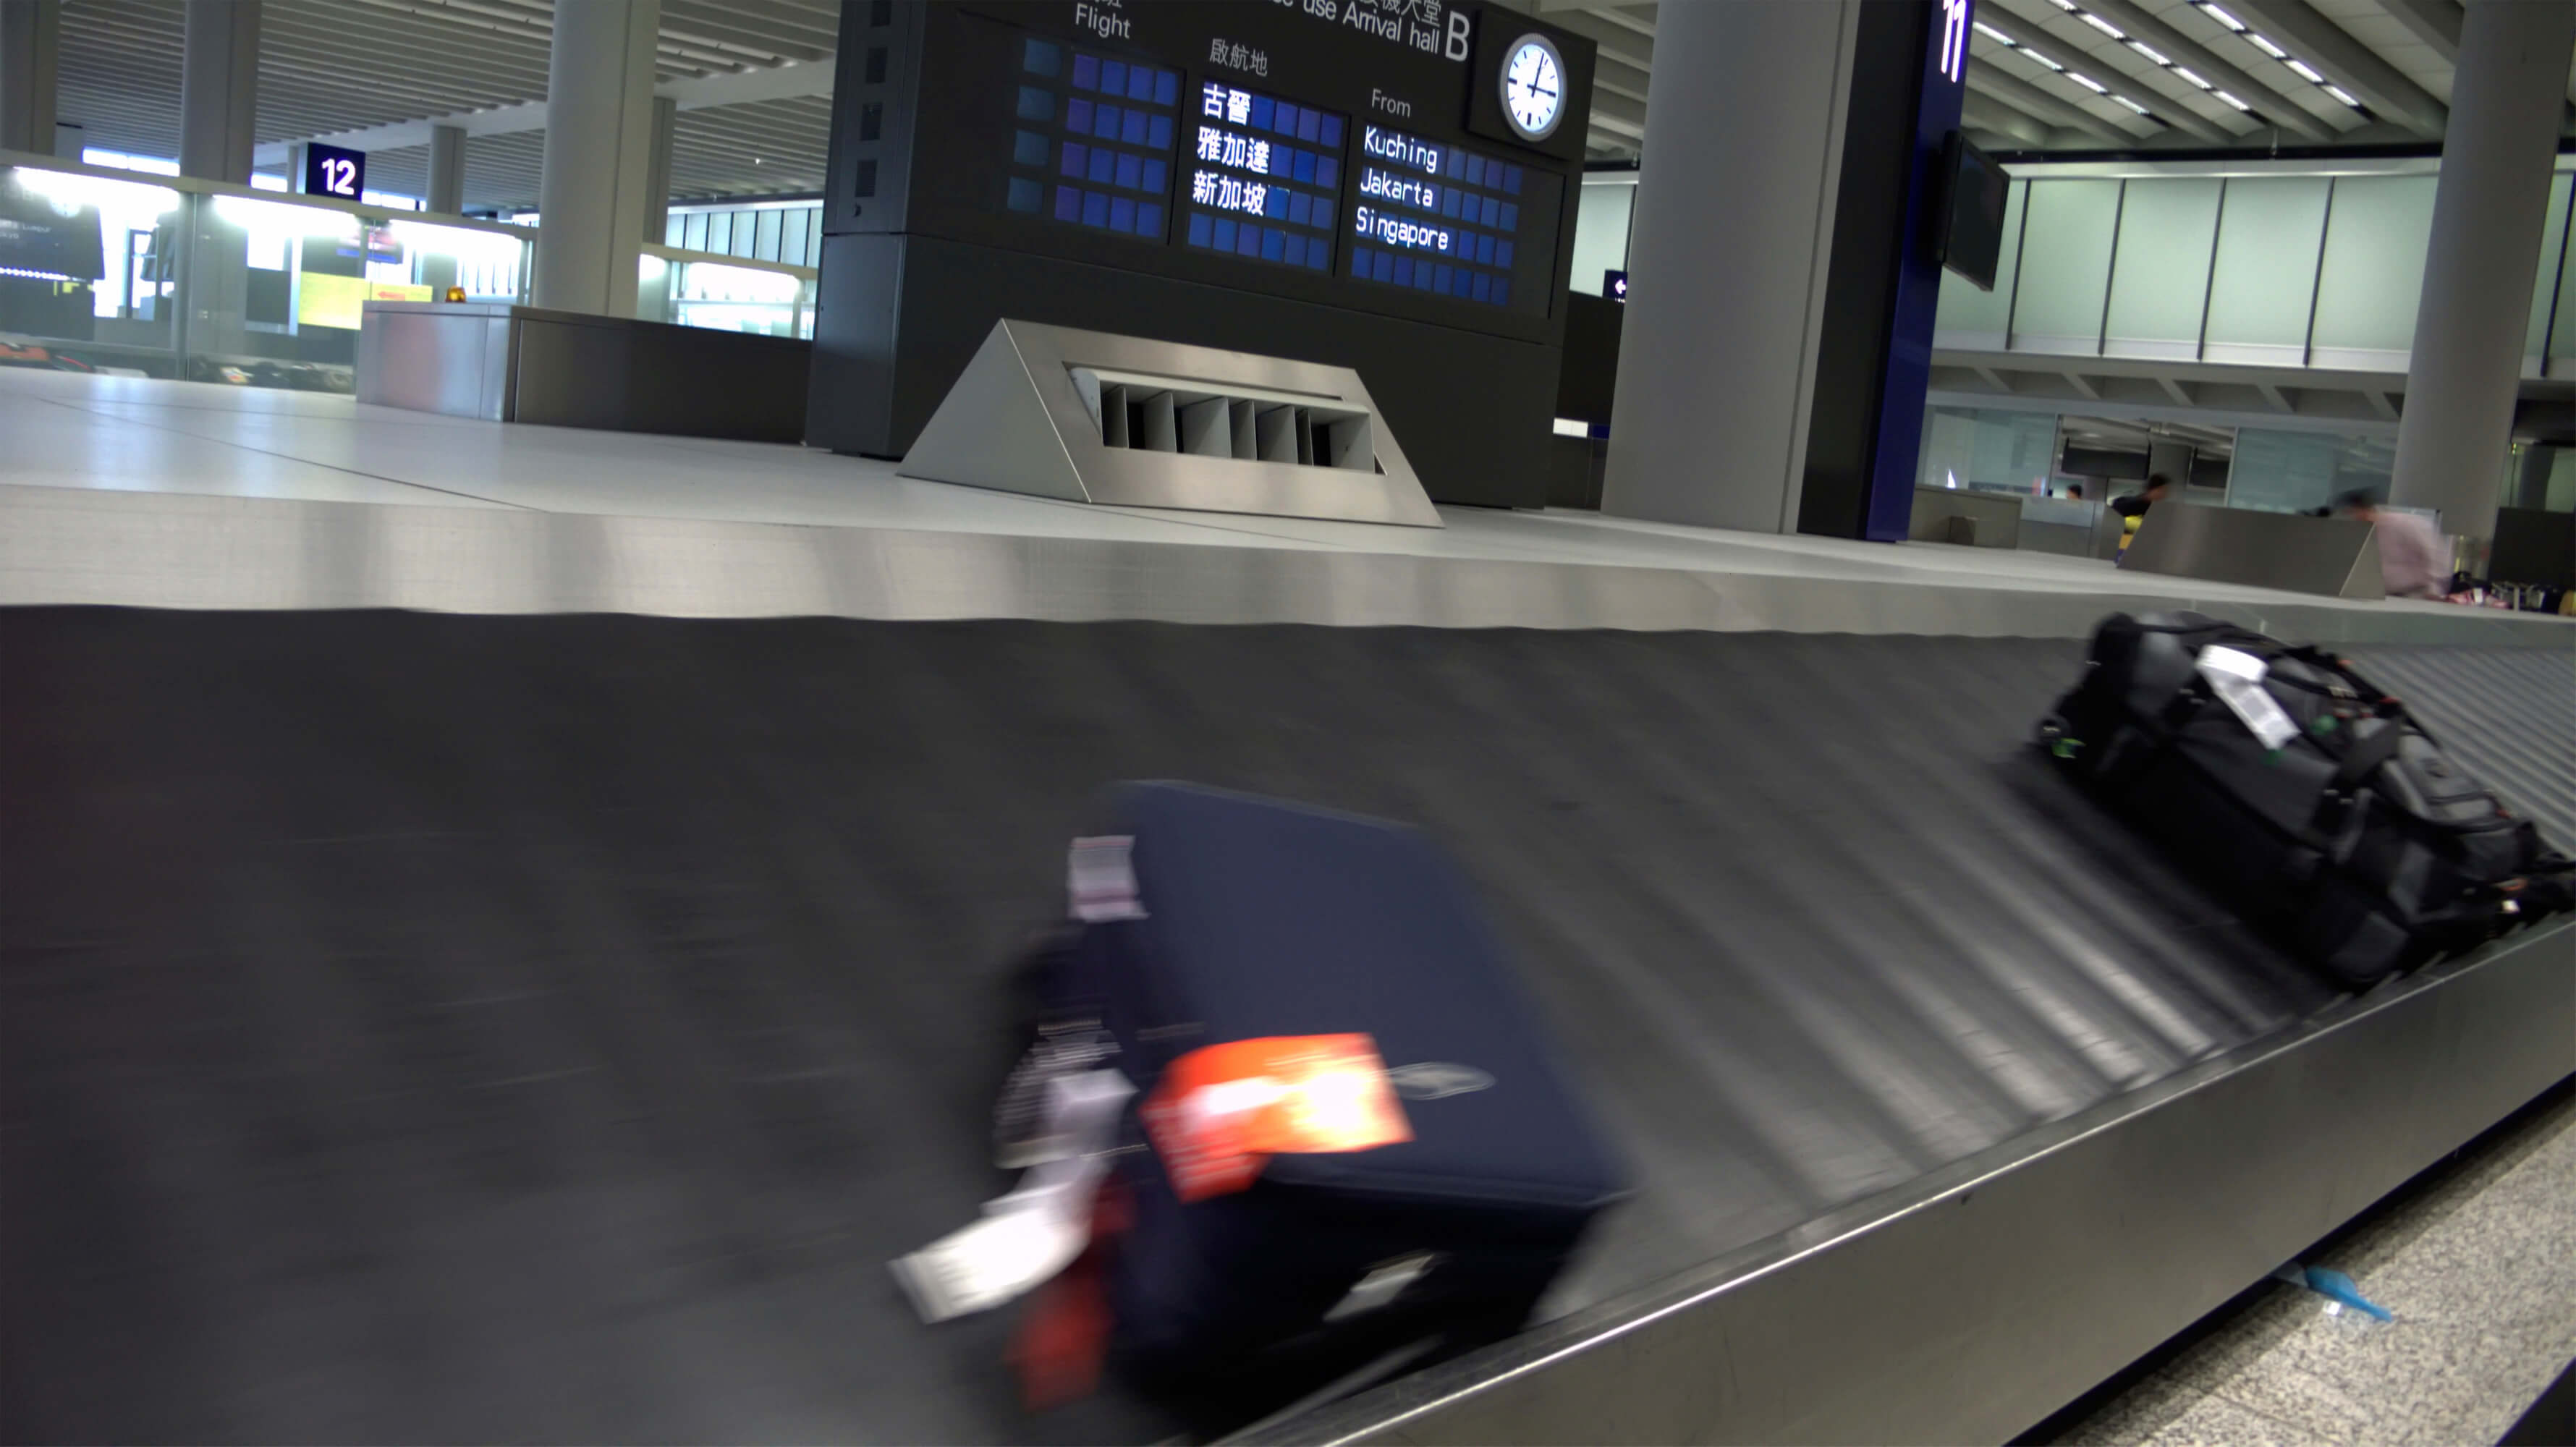 Air Transportation Commits to RFID Baggage Tracking Standards